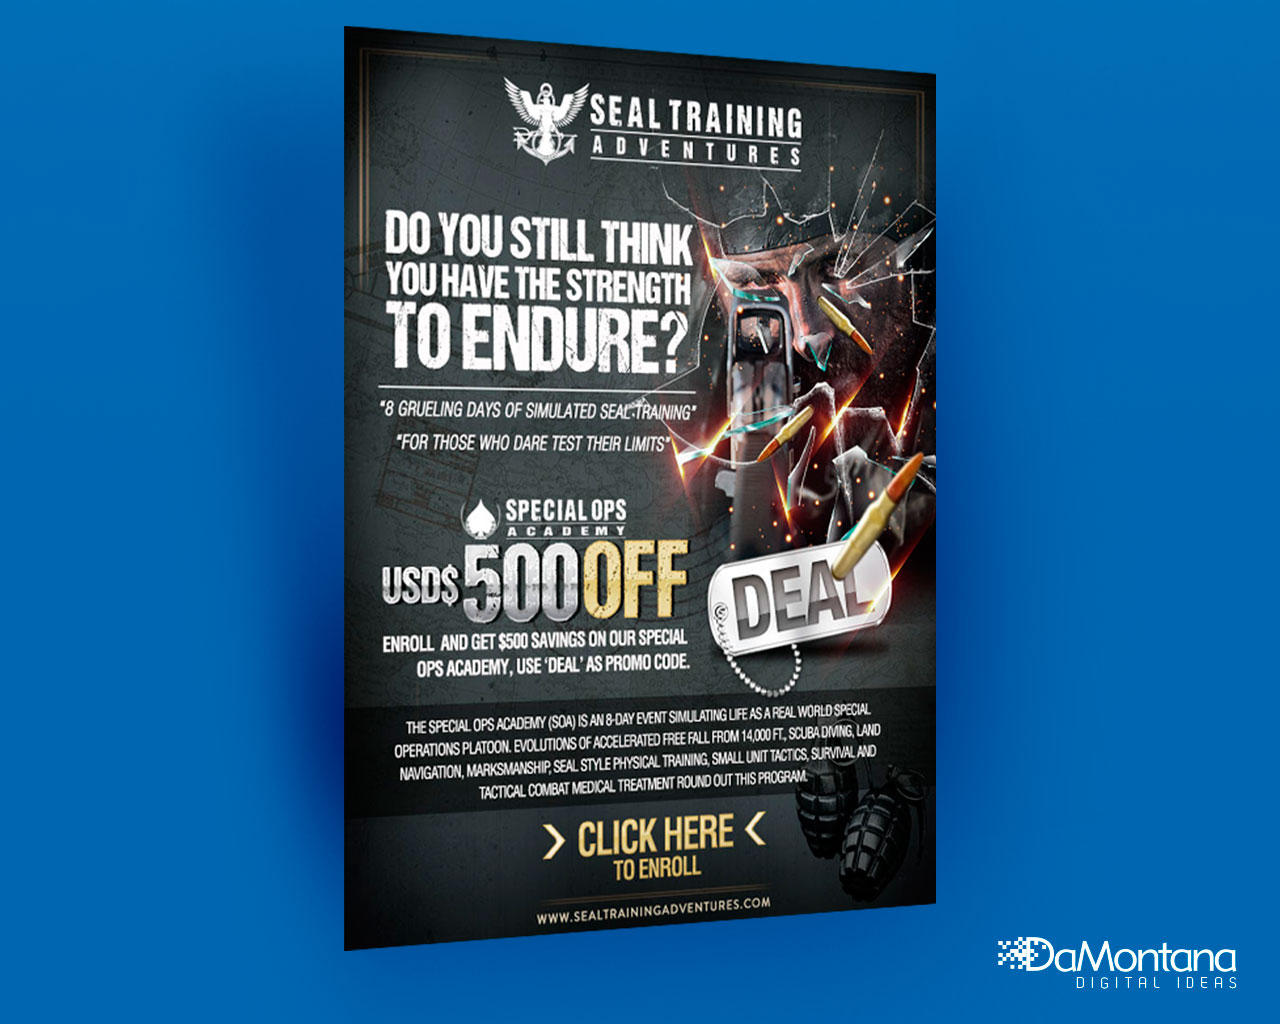 Express Email Newsletter Design by DaMontana - 78157